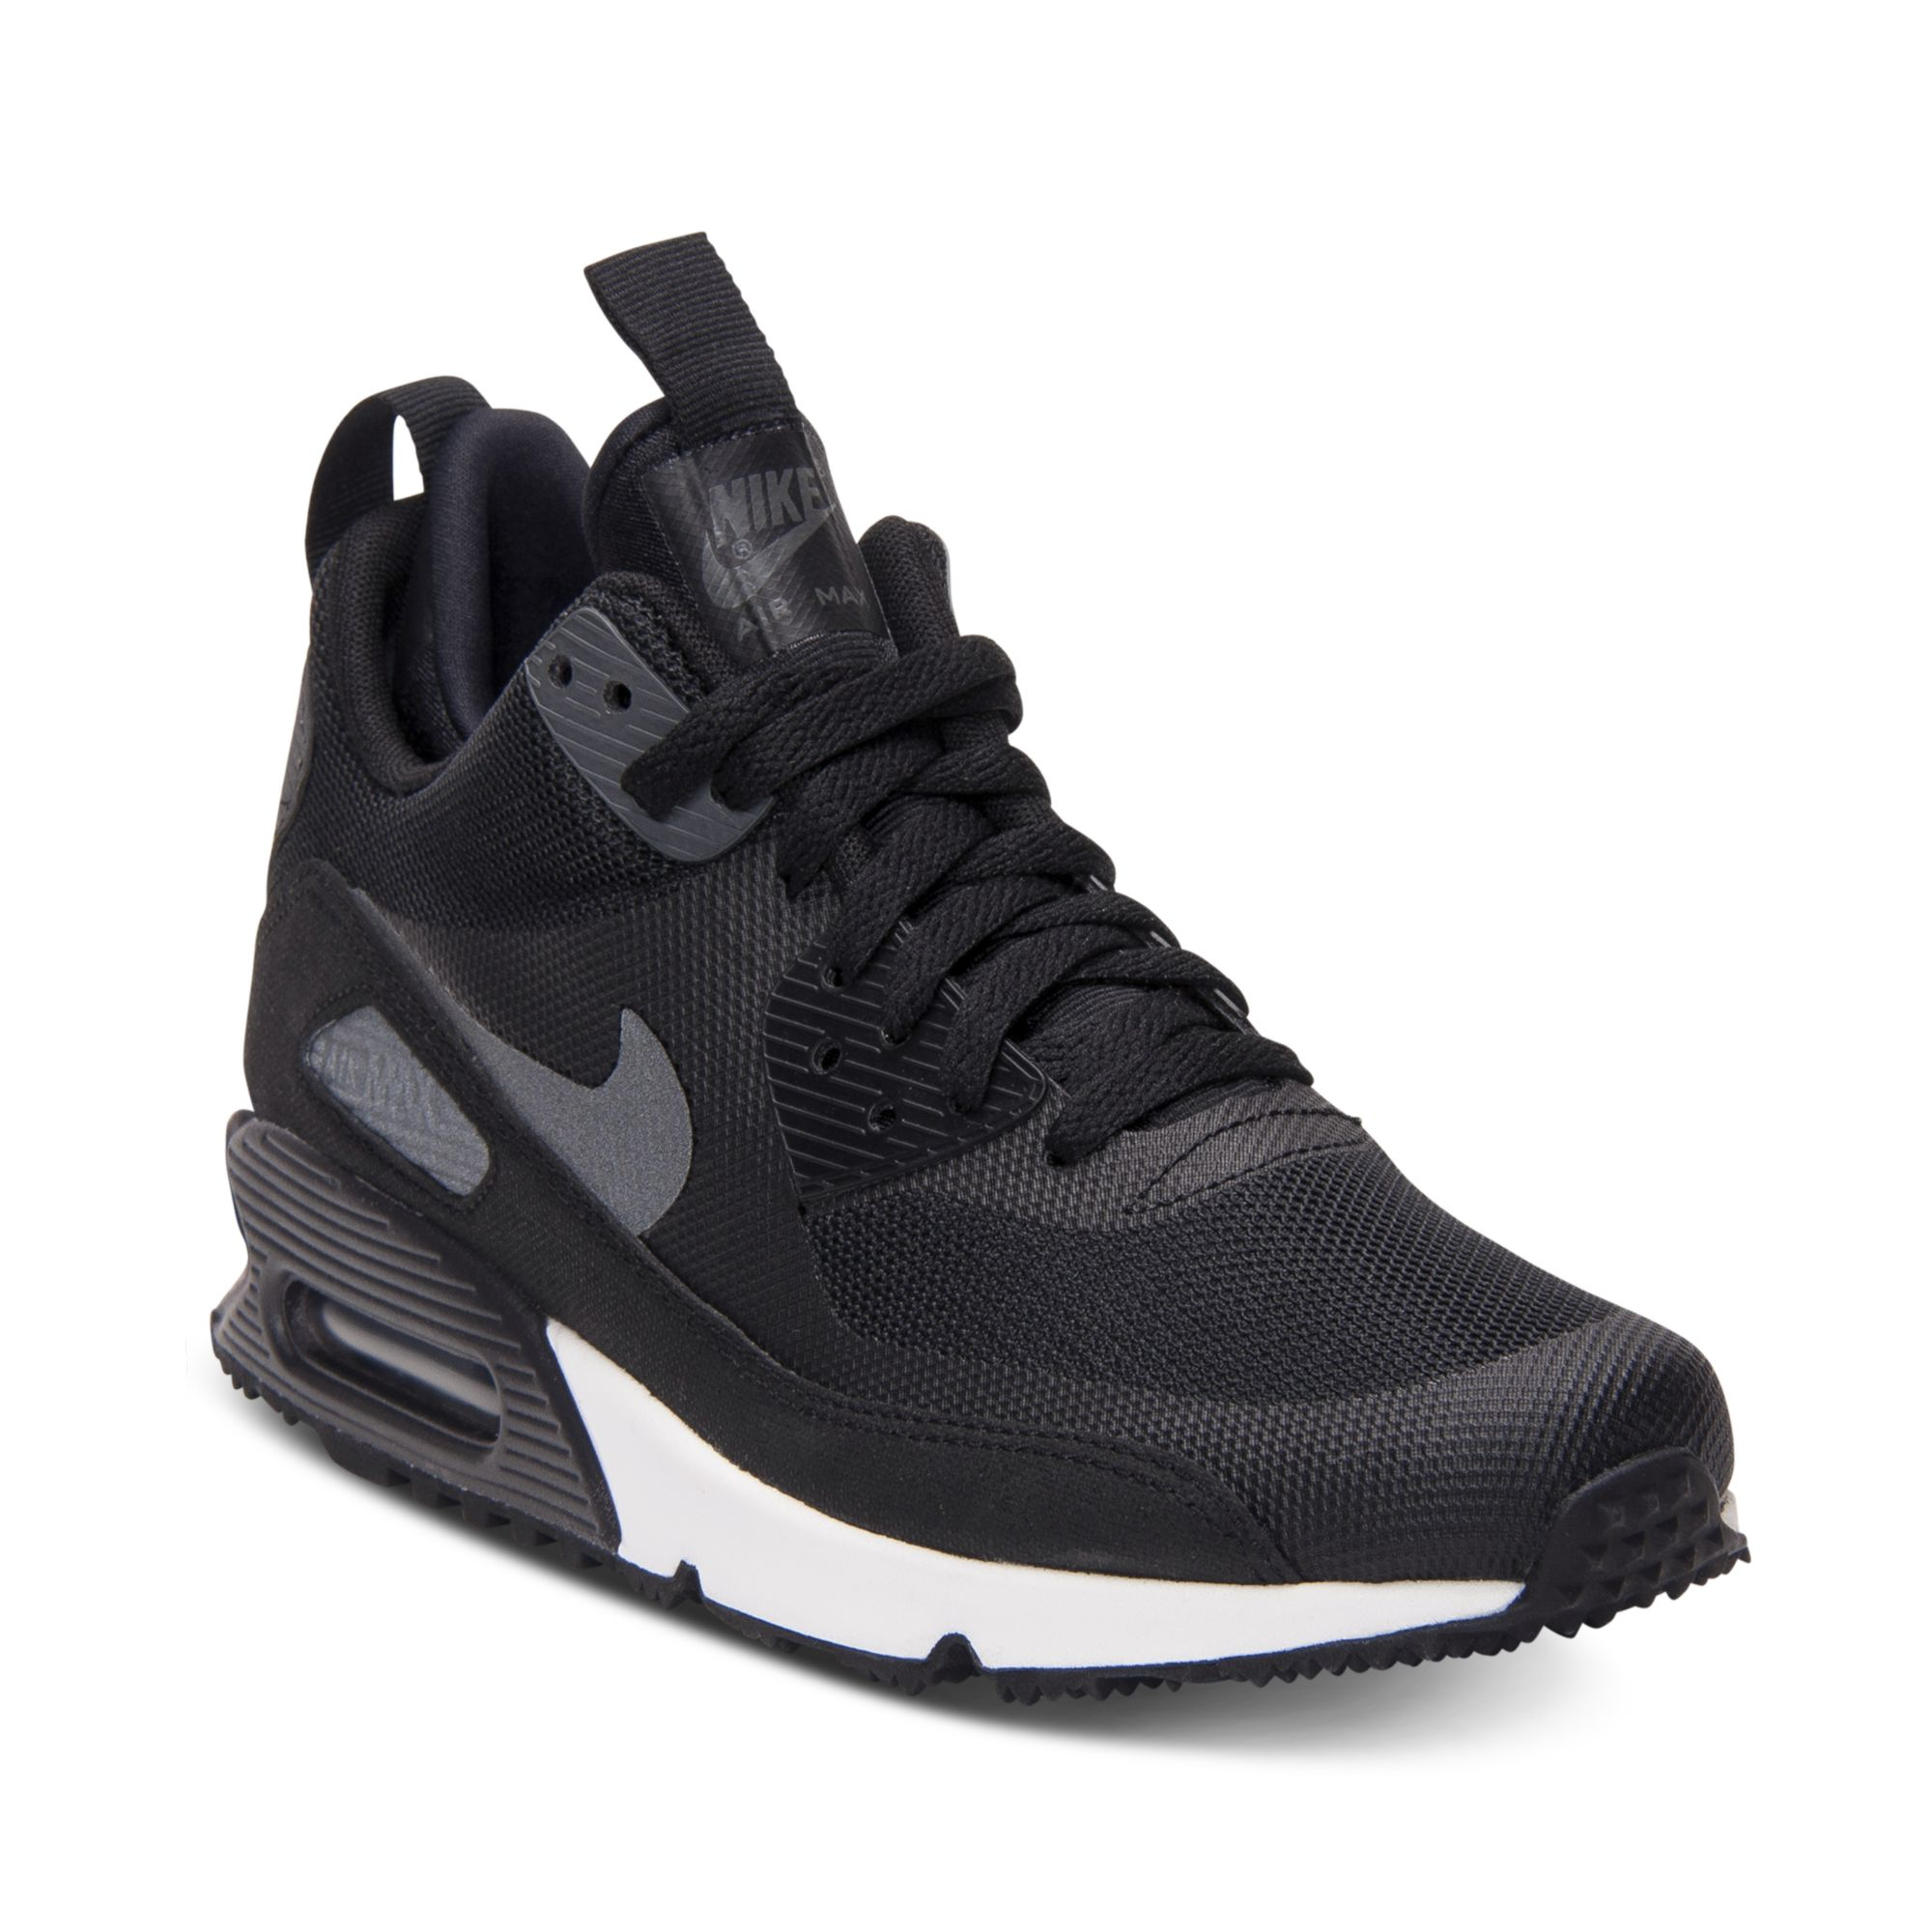 online retailer df6d3 52822 Lyst - Nike Air Max 90 Mid No Sew Running Sneakers in Black for Men